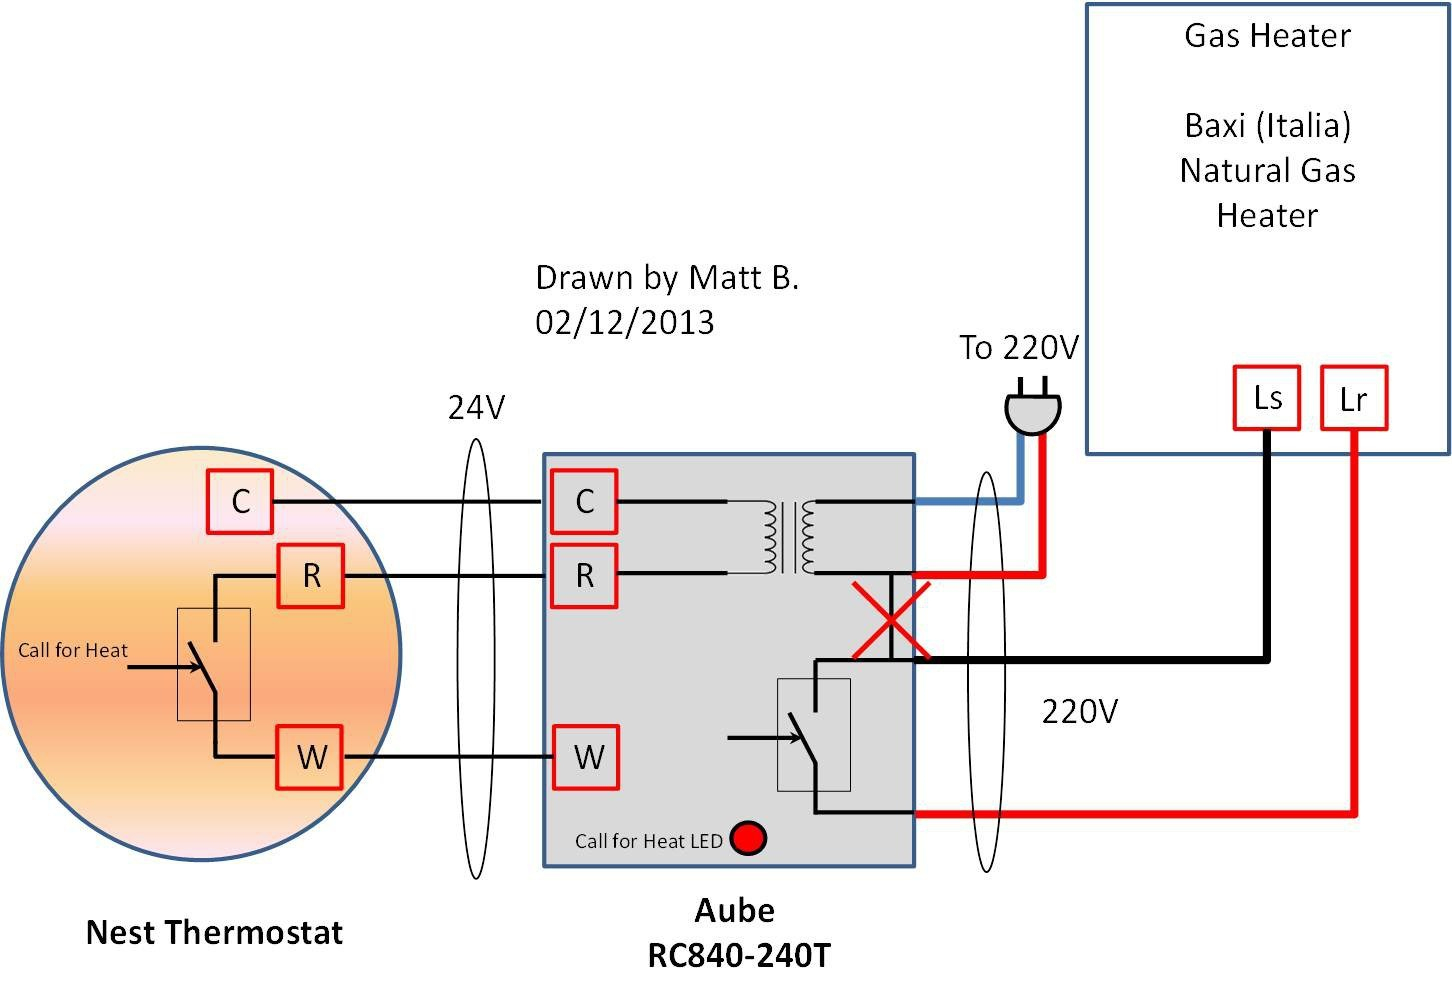 Nest Thermostat Wiring Diagram Uk | Wiring Diagram - Nest Thermostat Wiring Diagram Combi Boiler